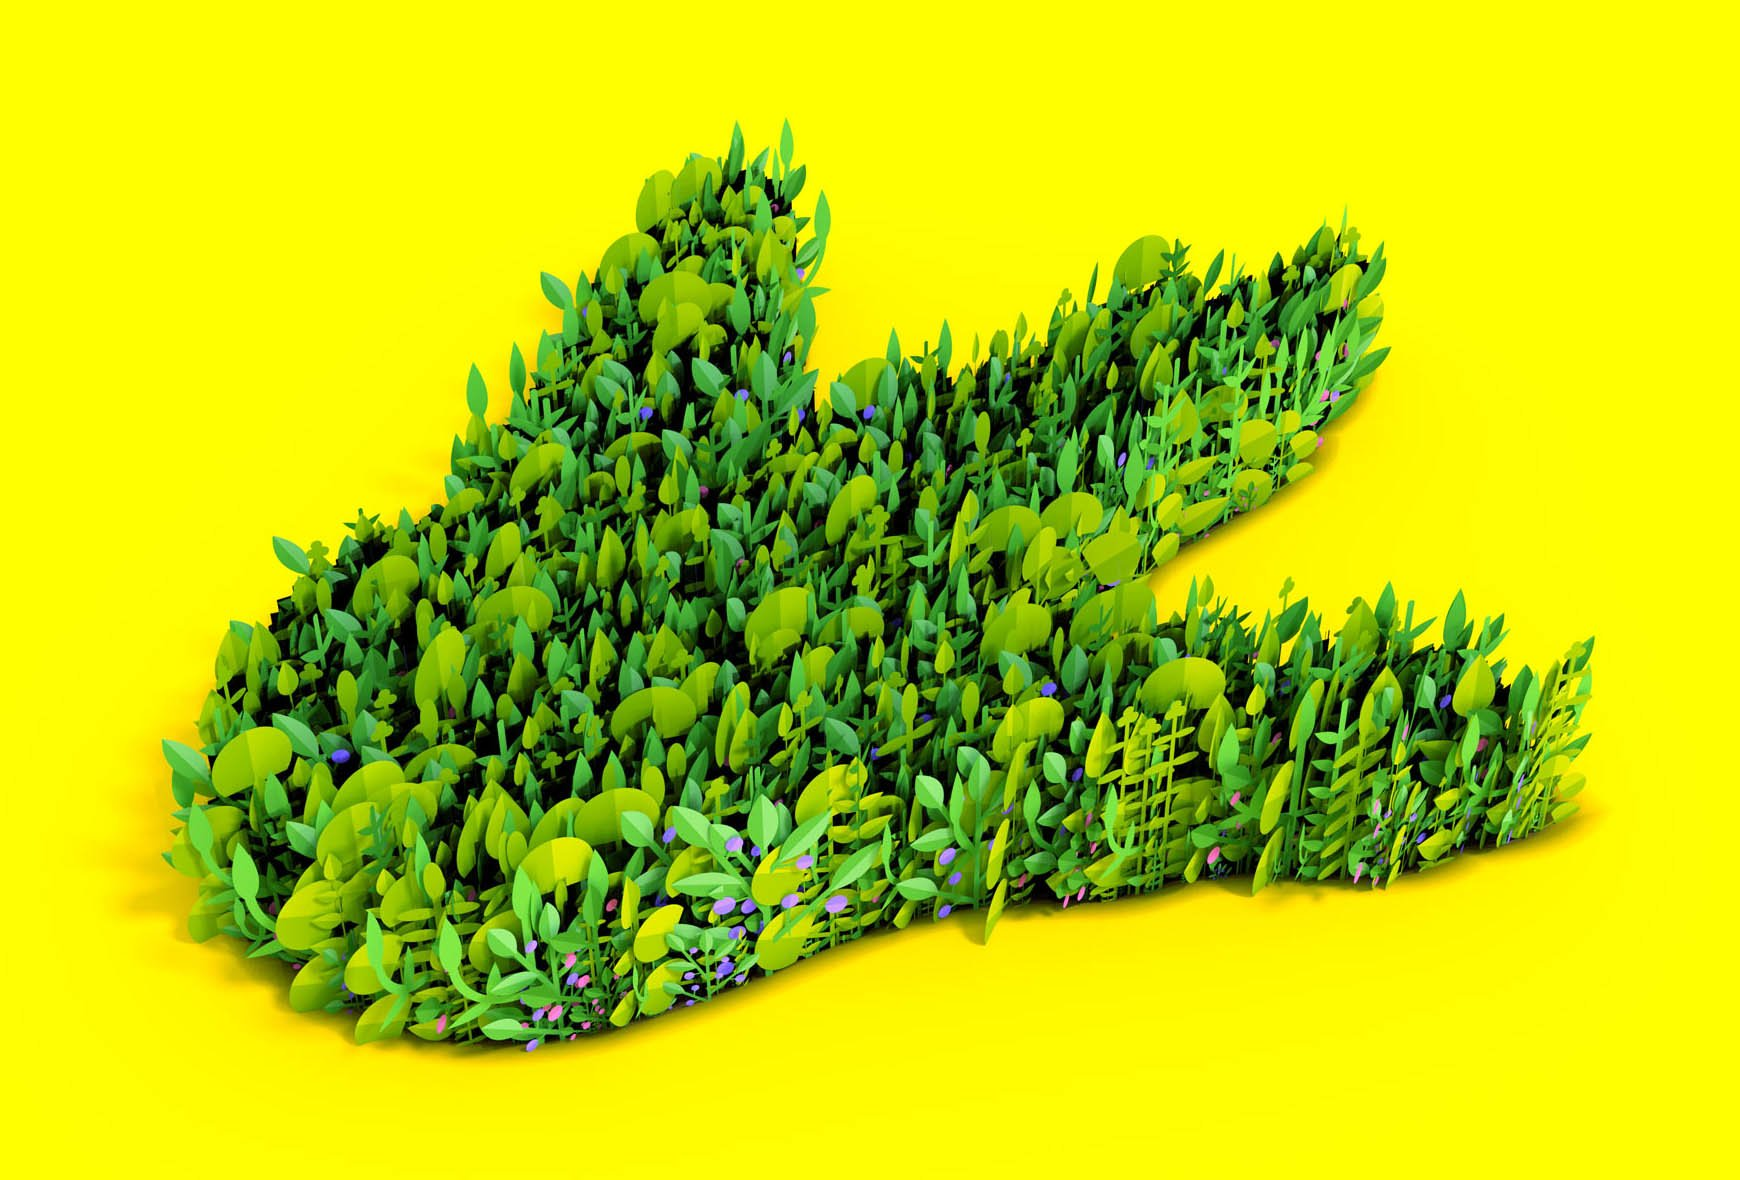 an illustration of a very leafy garden in the shape of dinosaur foot